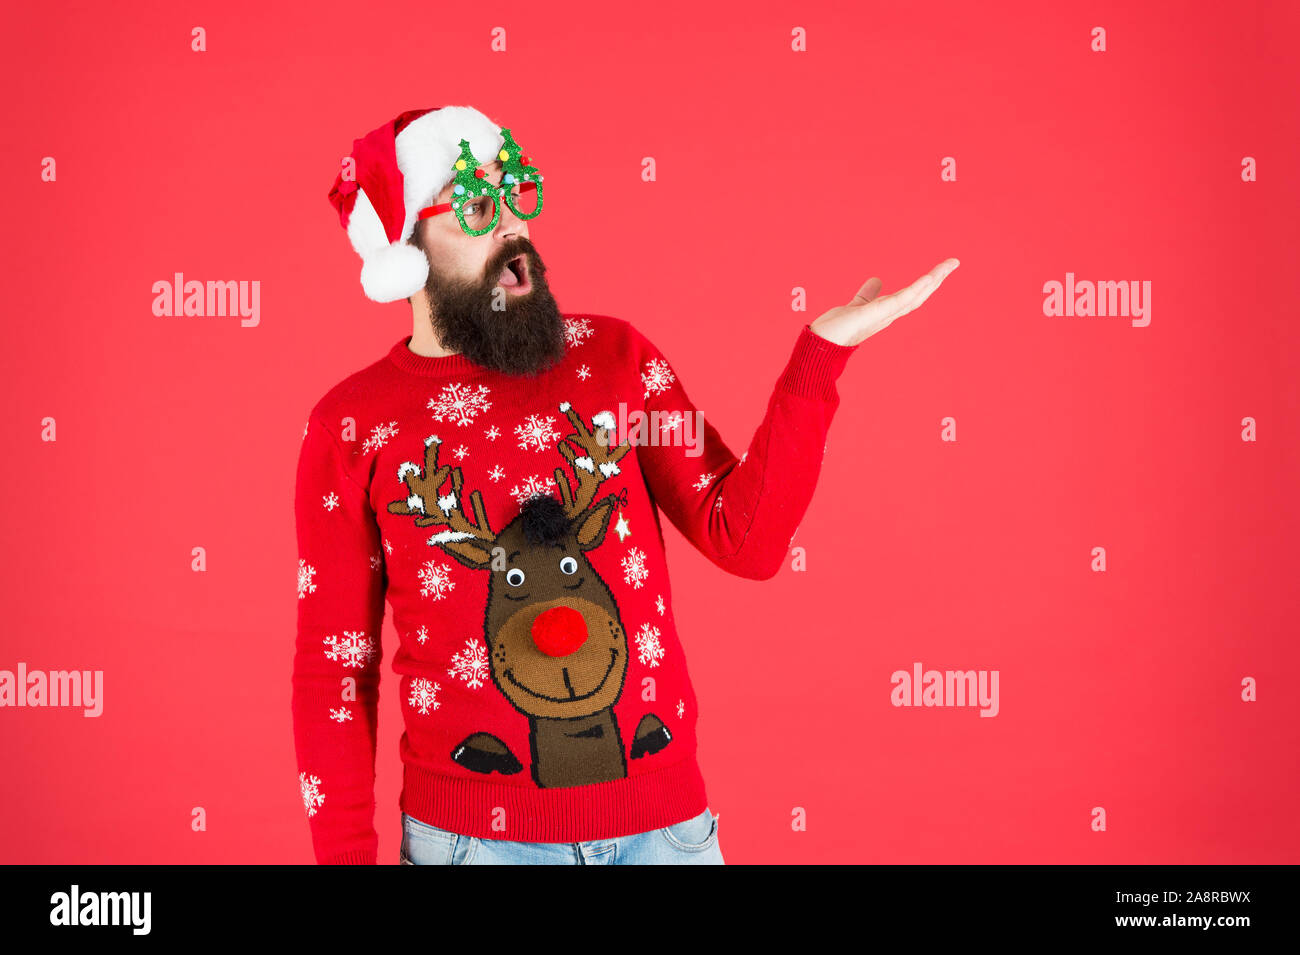 Best Price New Year Sales Here Bearded Santa Man Party Glasses Surprised Santa Ready To Celebrate Xmas Its Time For Christmas Man Reindeer On Knitted Sweater Winter Holiday Cold Season Clothes Stock